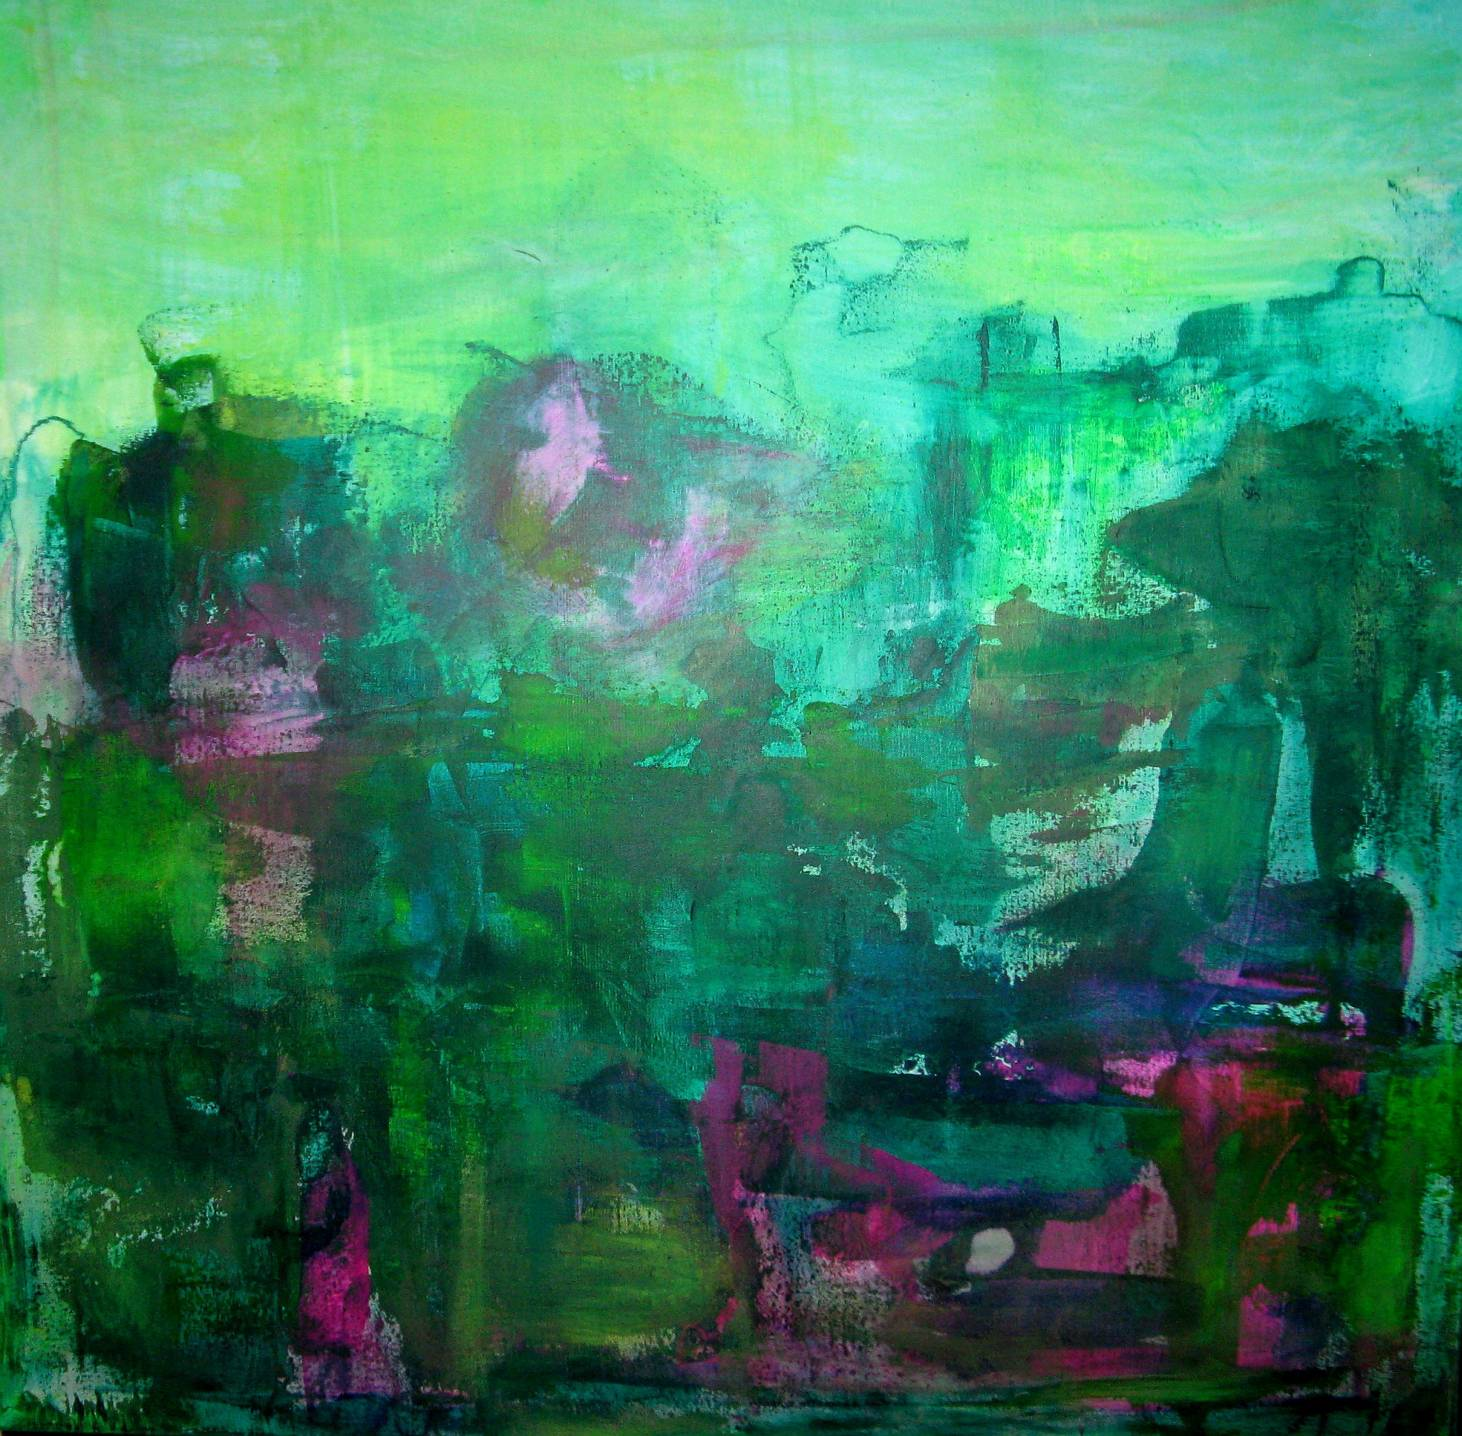 Greendream, 100x100cm